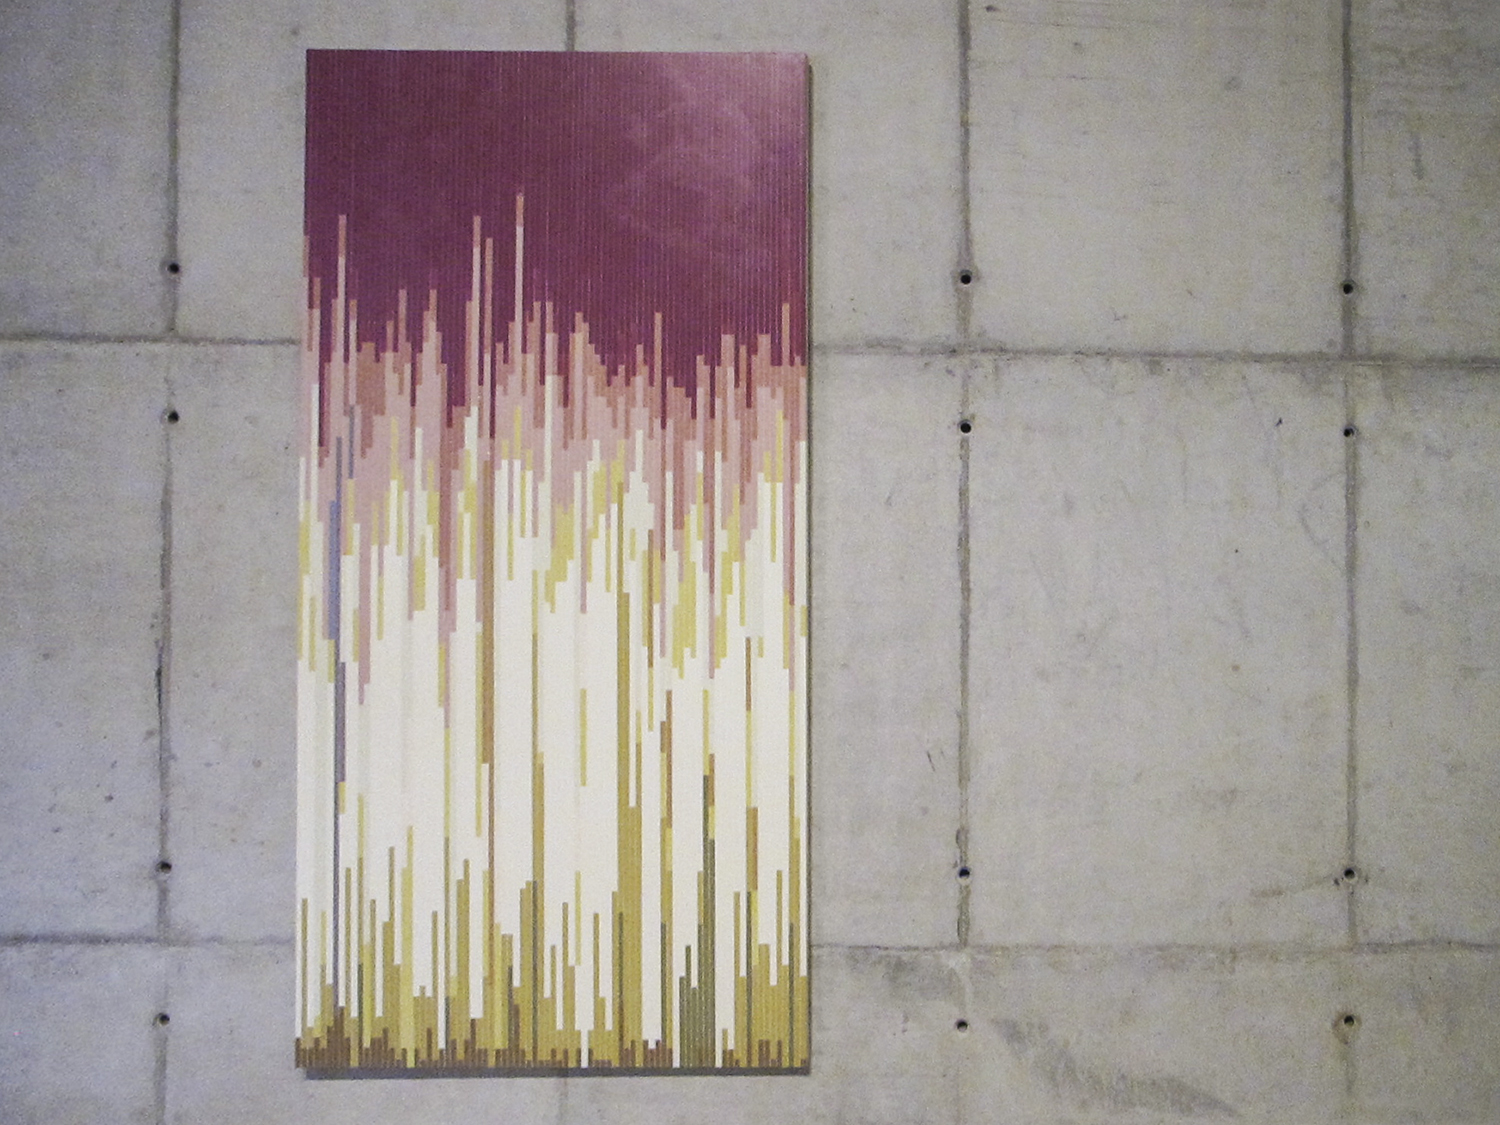 Daily Activities(StatisticalSelf-portraits series)•2012 • Acrylic on canvas + artist book •78.74 x 39.37 in